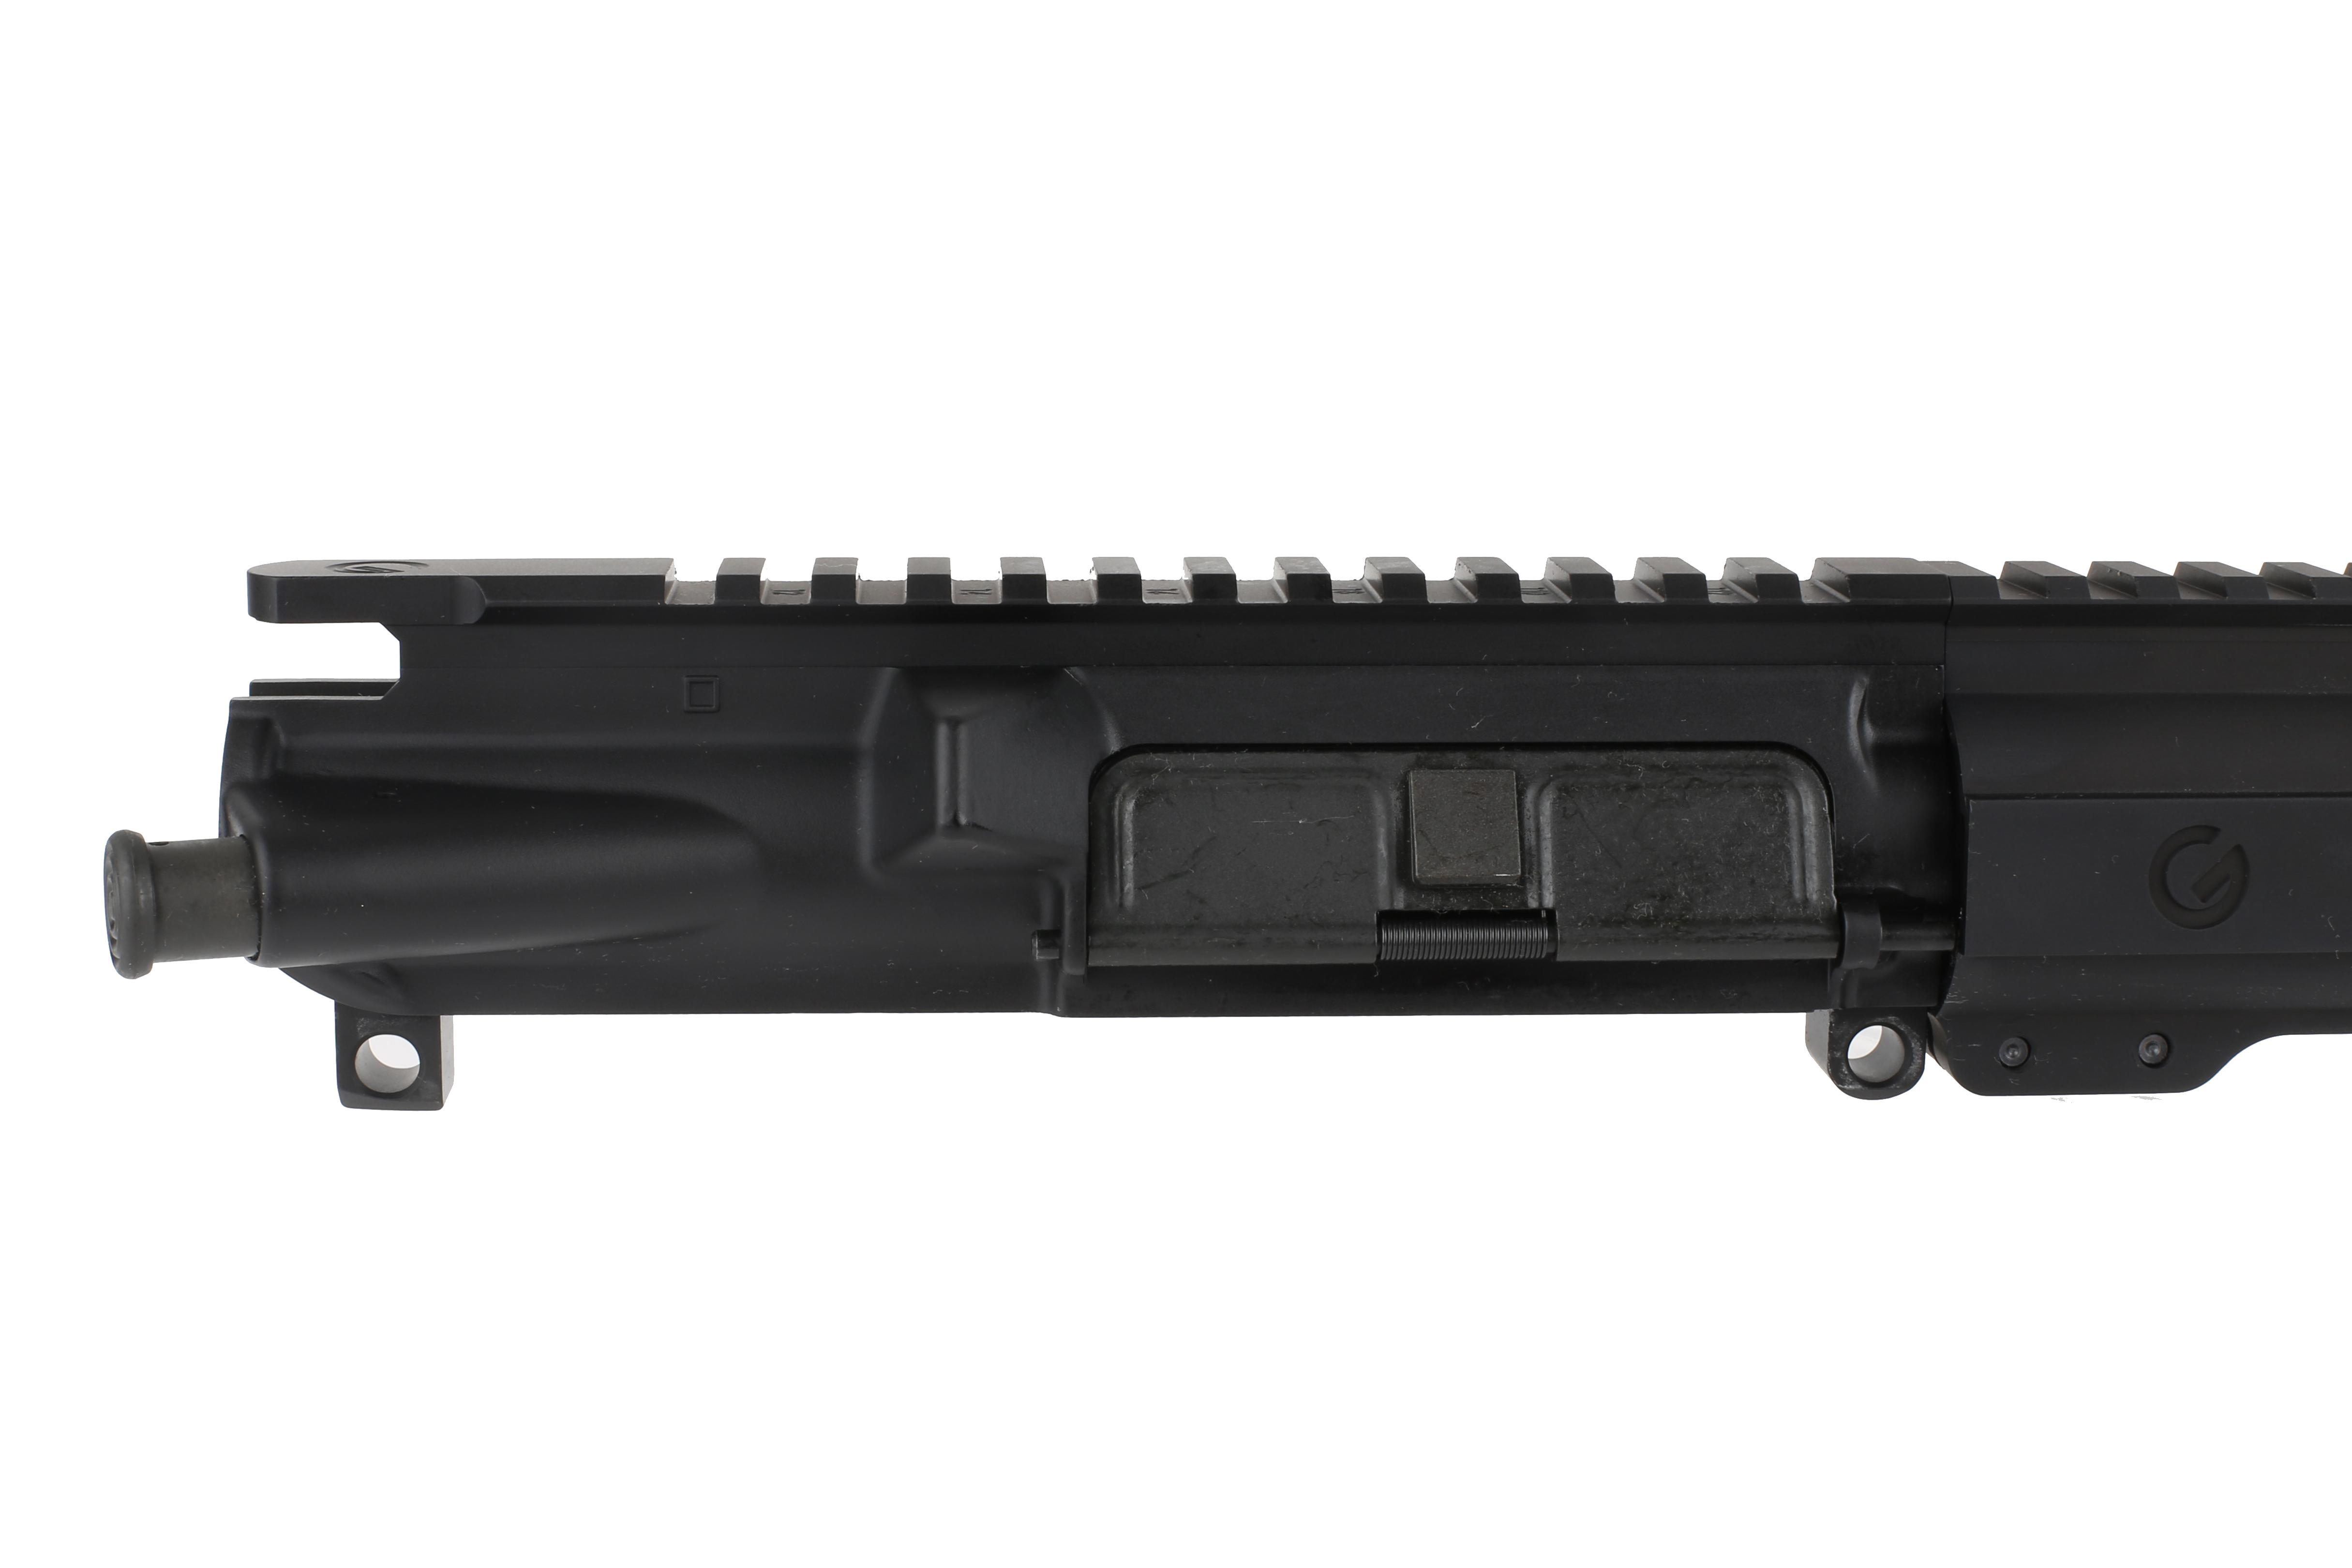 The Mil-Spec ar15 upper receiver kit by ghost firearms is ready to attach to any ar lower receiver